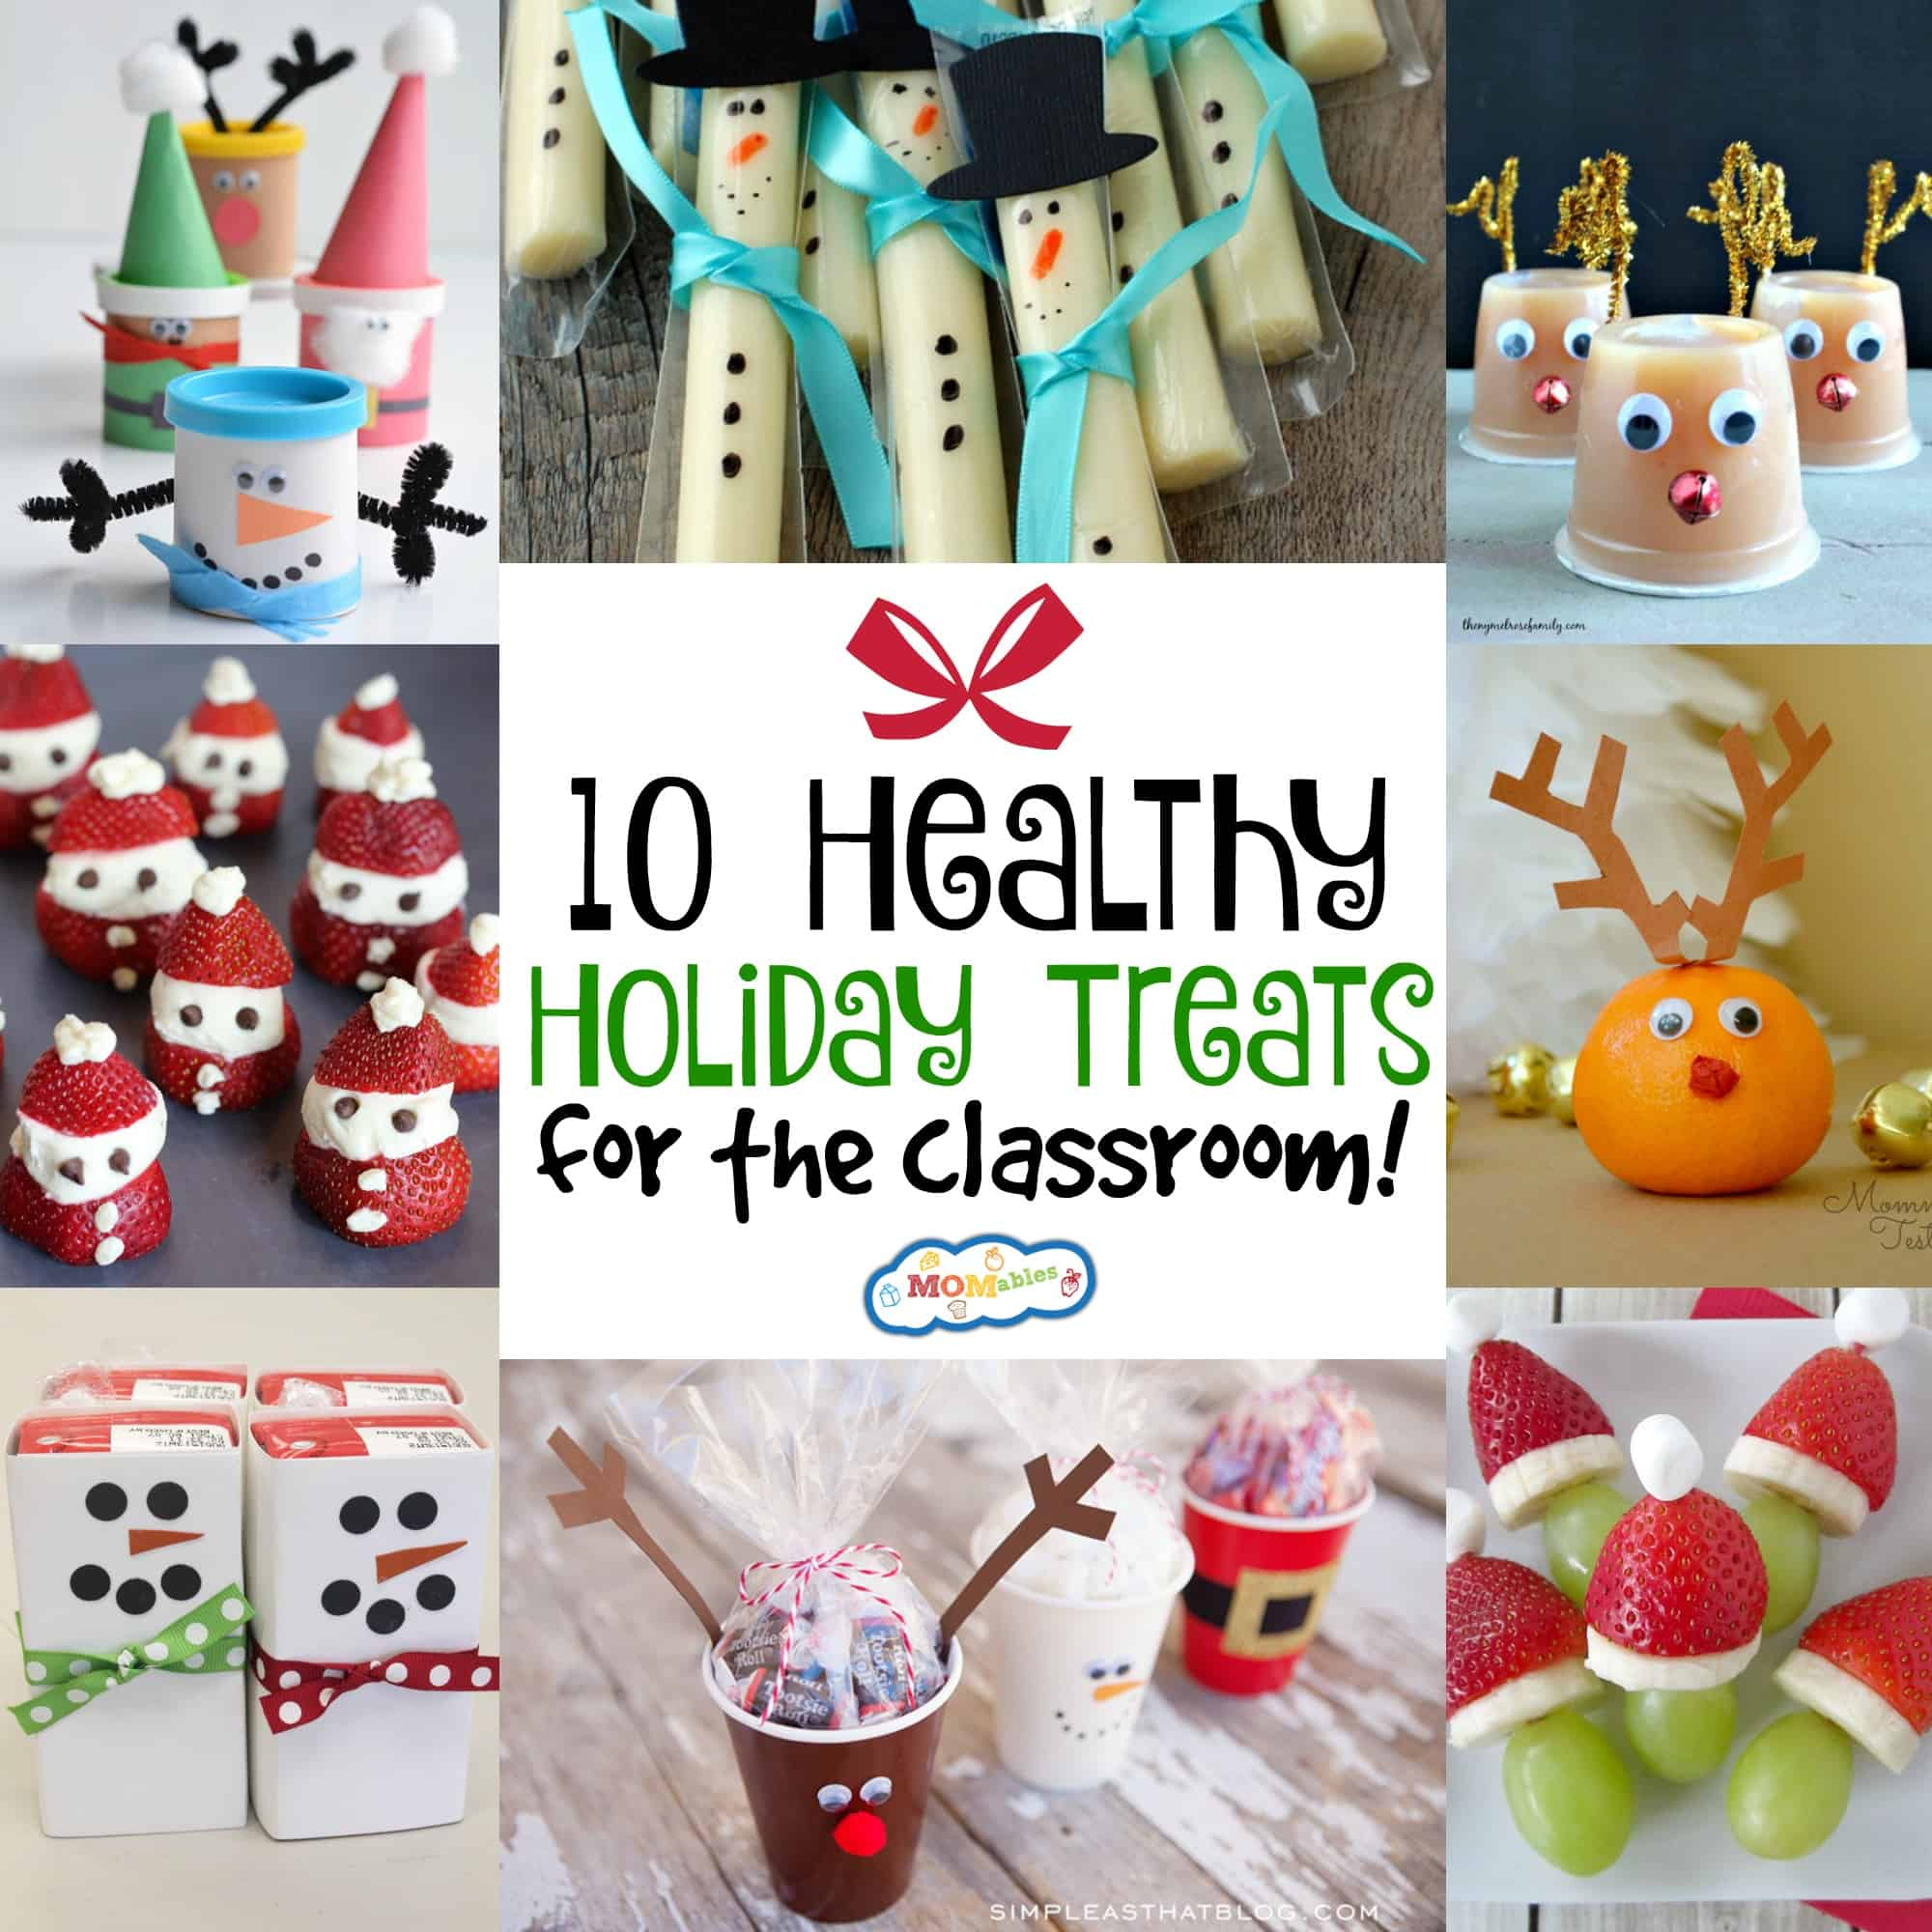 Christmas Treats For School Parties.10 Healthy Holiday Treats For The Classroom Momables